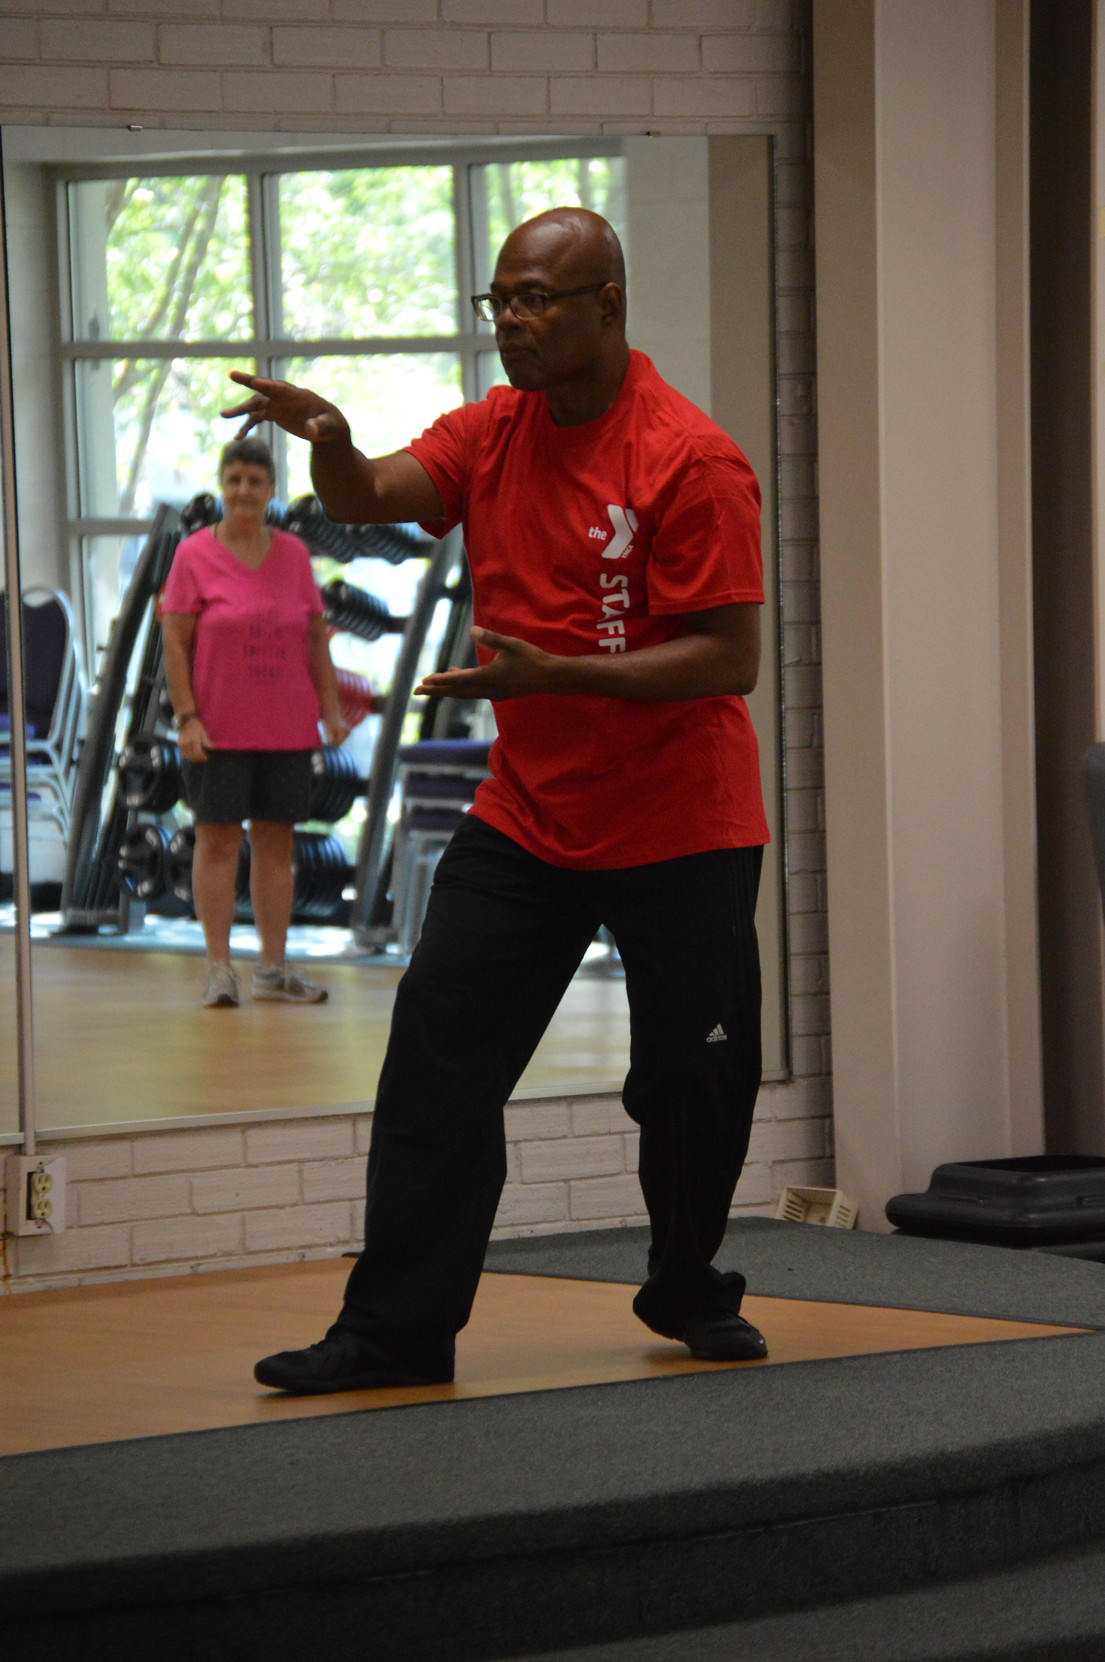 Joseph Whiting, director of health promotion, education and behavior at Phoenix Health Education and Wellness Center, shows his students Tai Chi movements during his Tai Chi class at Sumter Family YMCA on Friday.